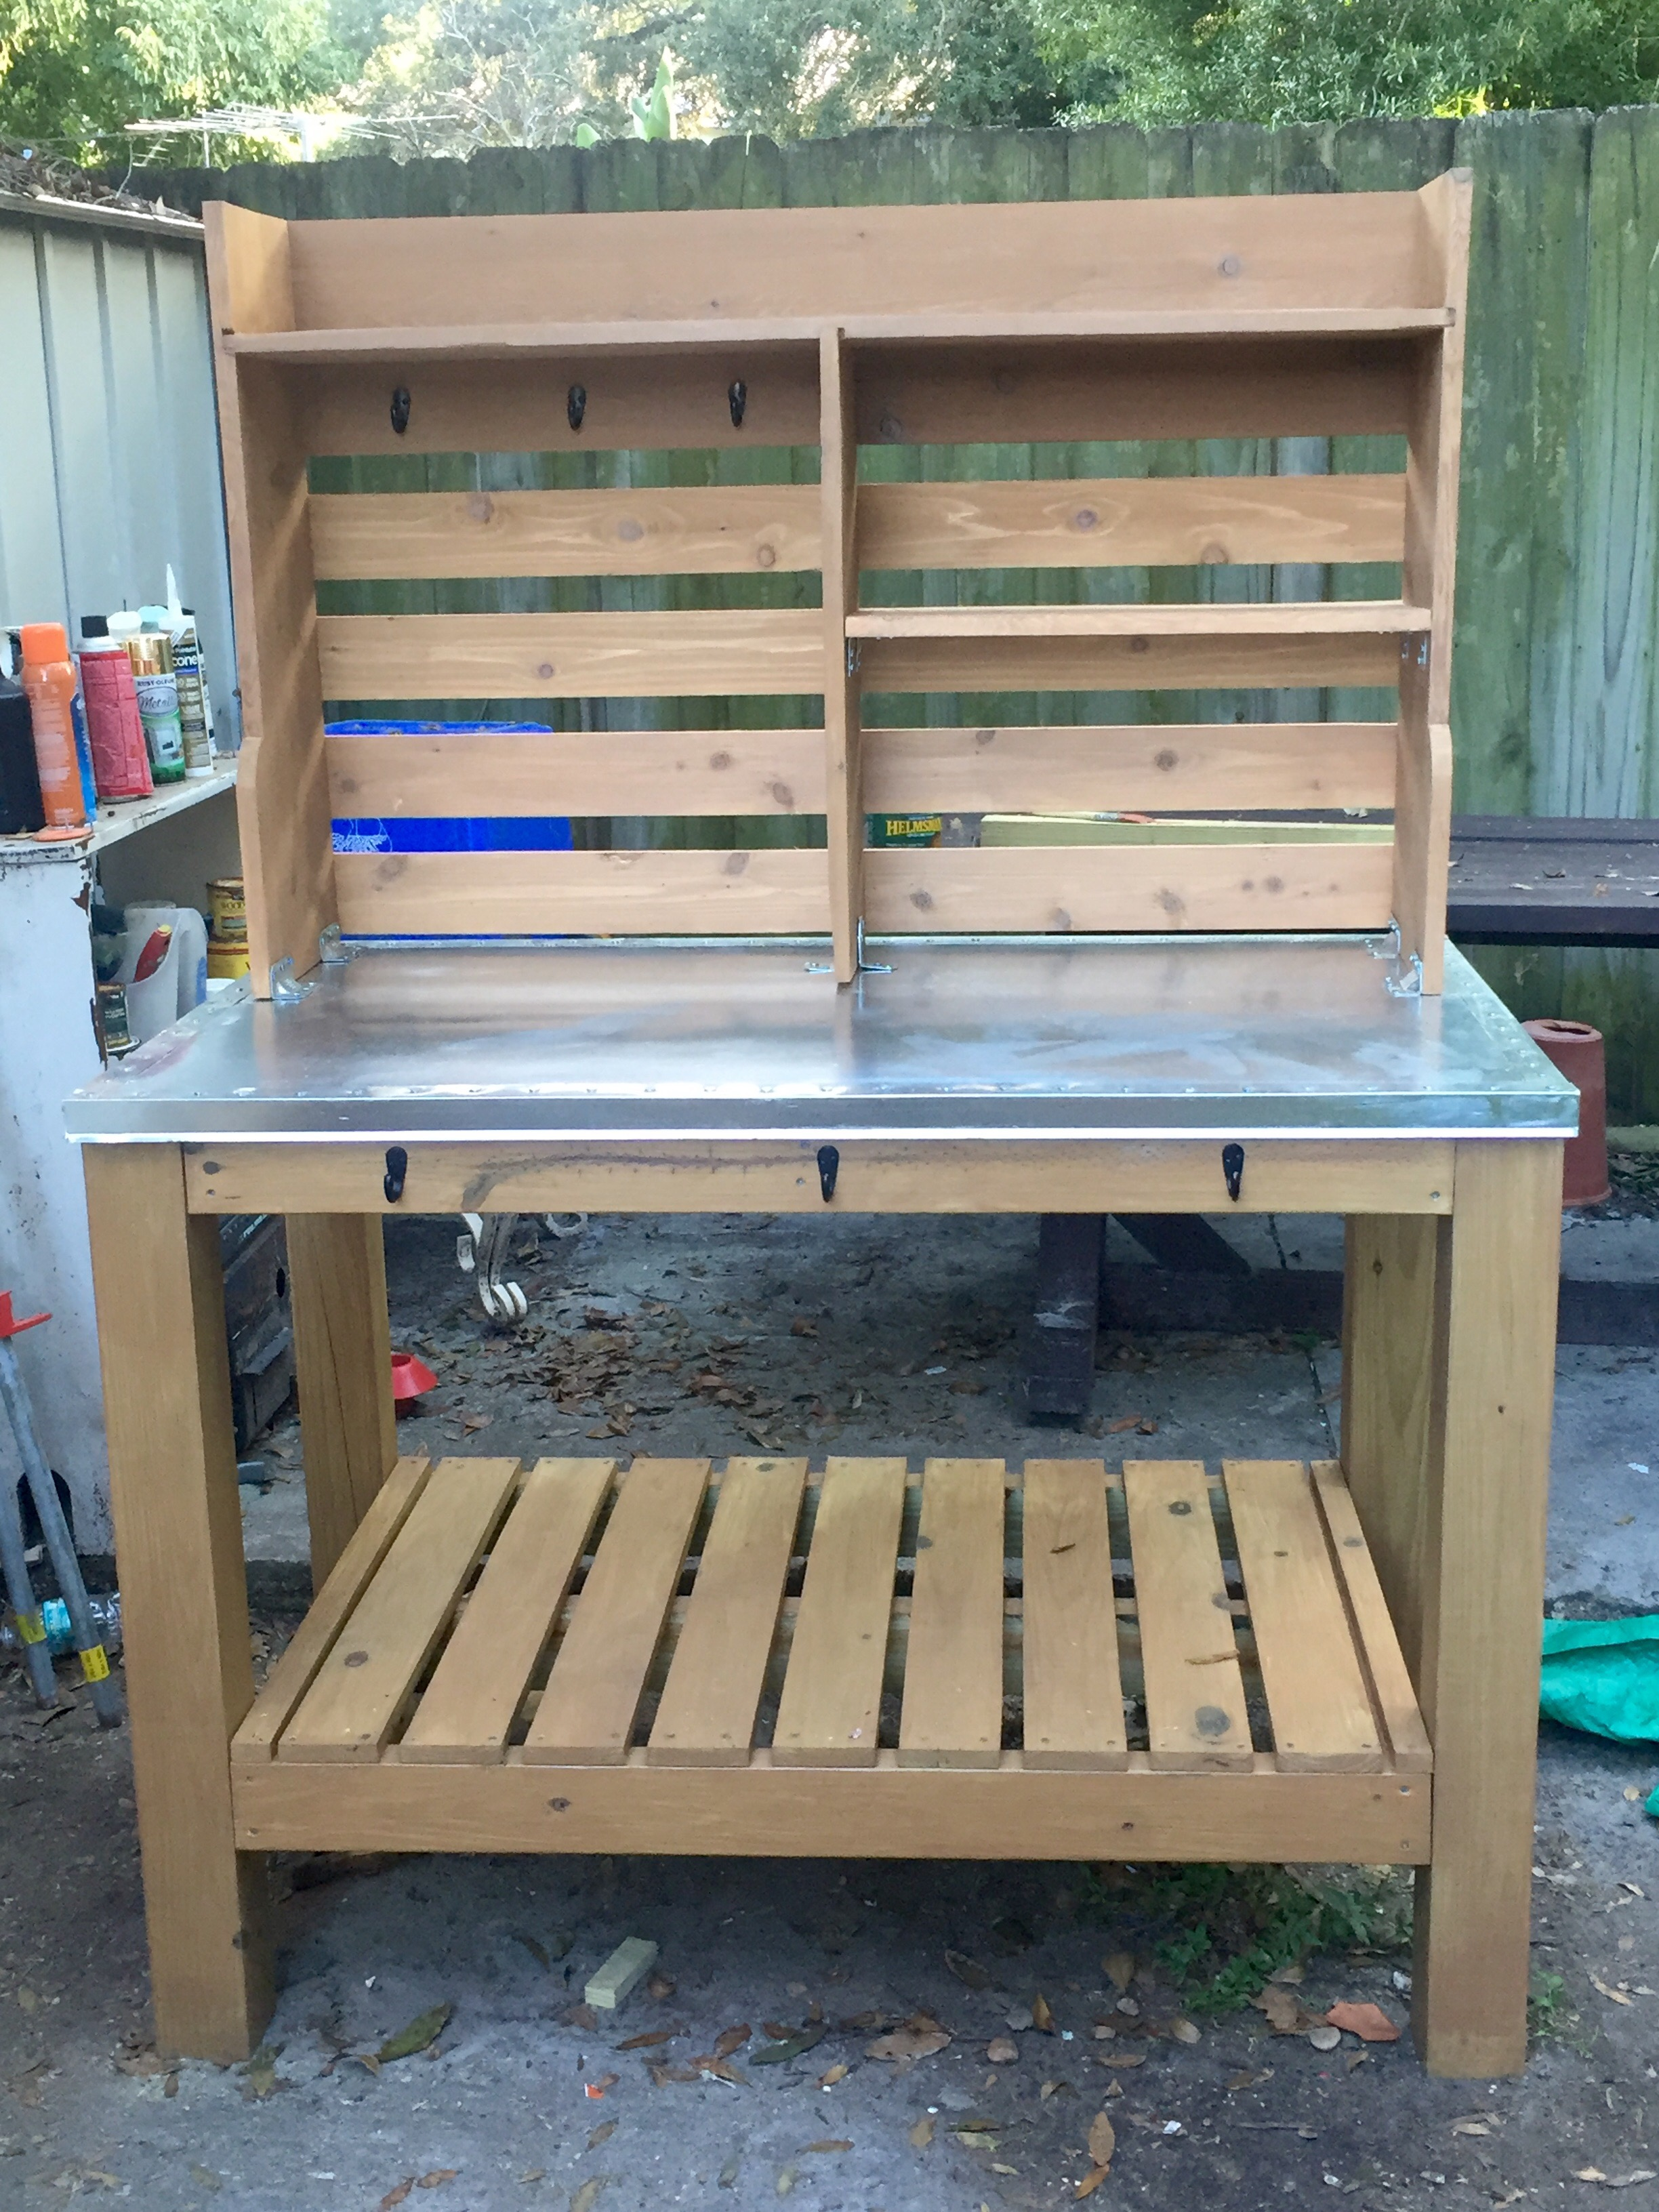 station wooden modern folding to plans inexpensive a garden with ideas outdoor how table of potting ikea rubbermaid curved size make shelves full bench planter